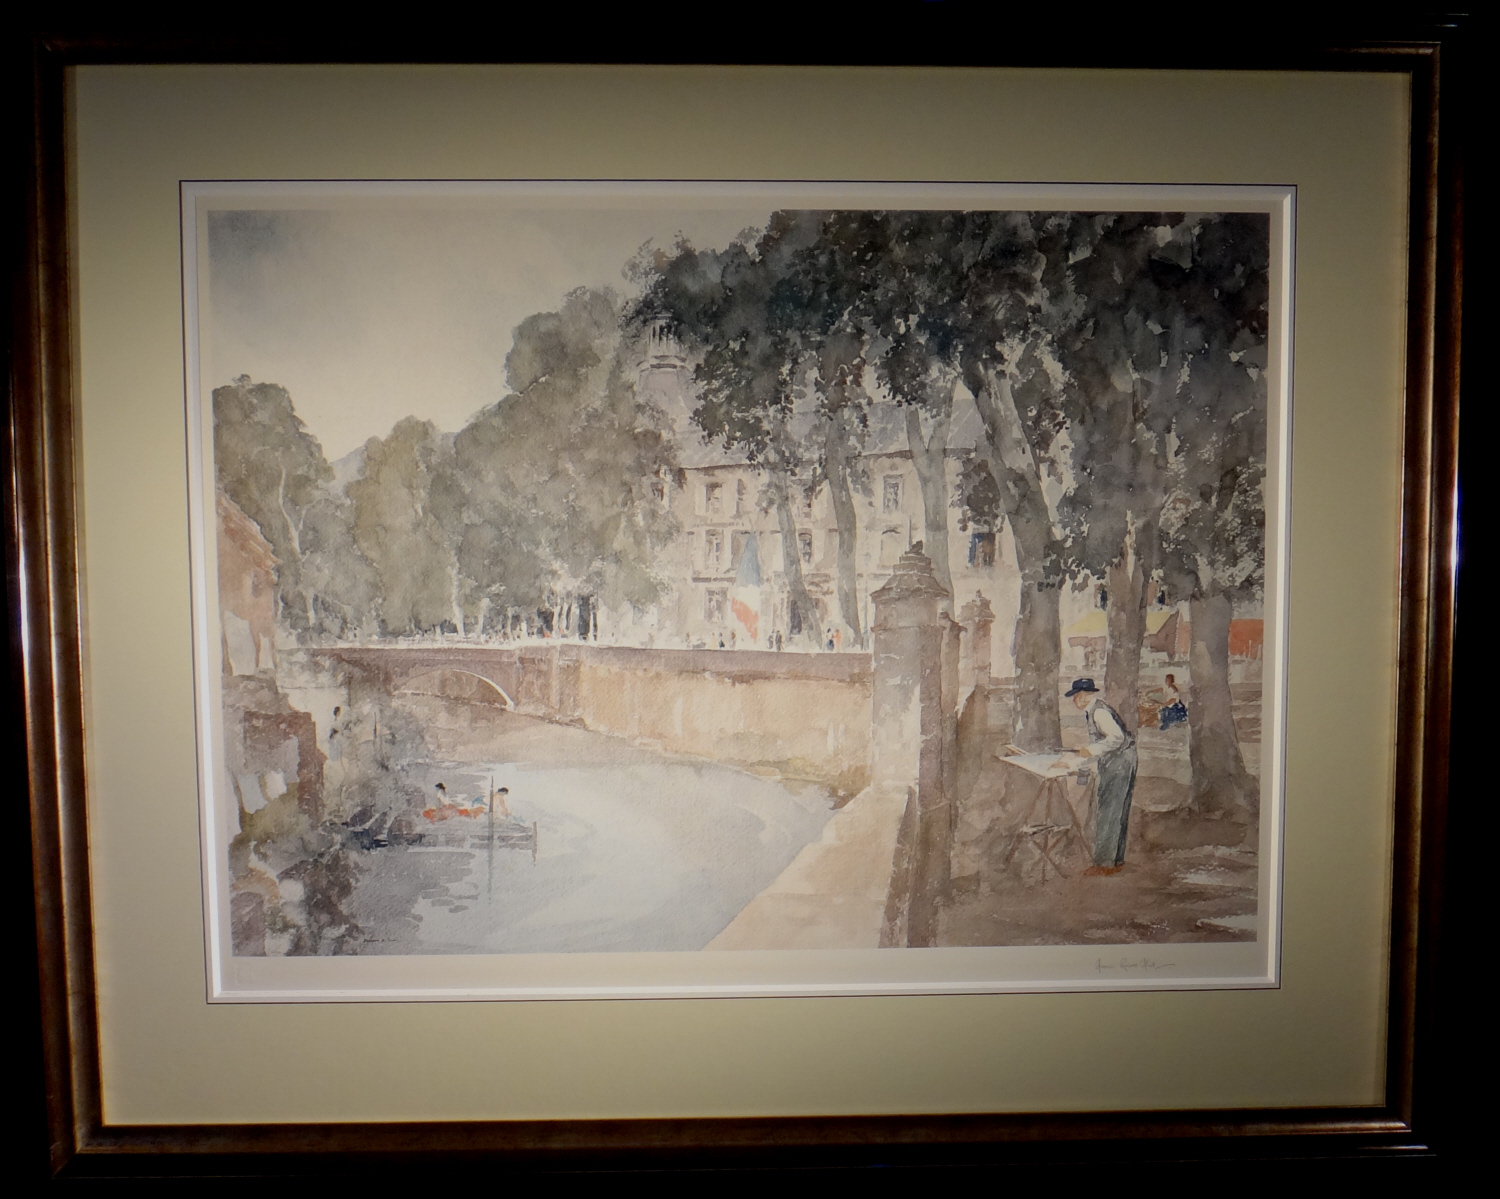 russell flint, my father painting at Brantome, signed limited edition print